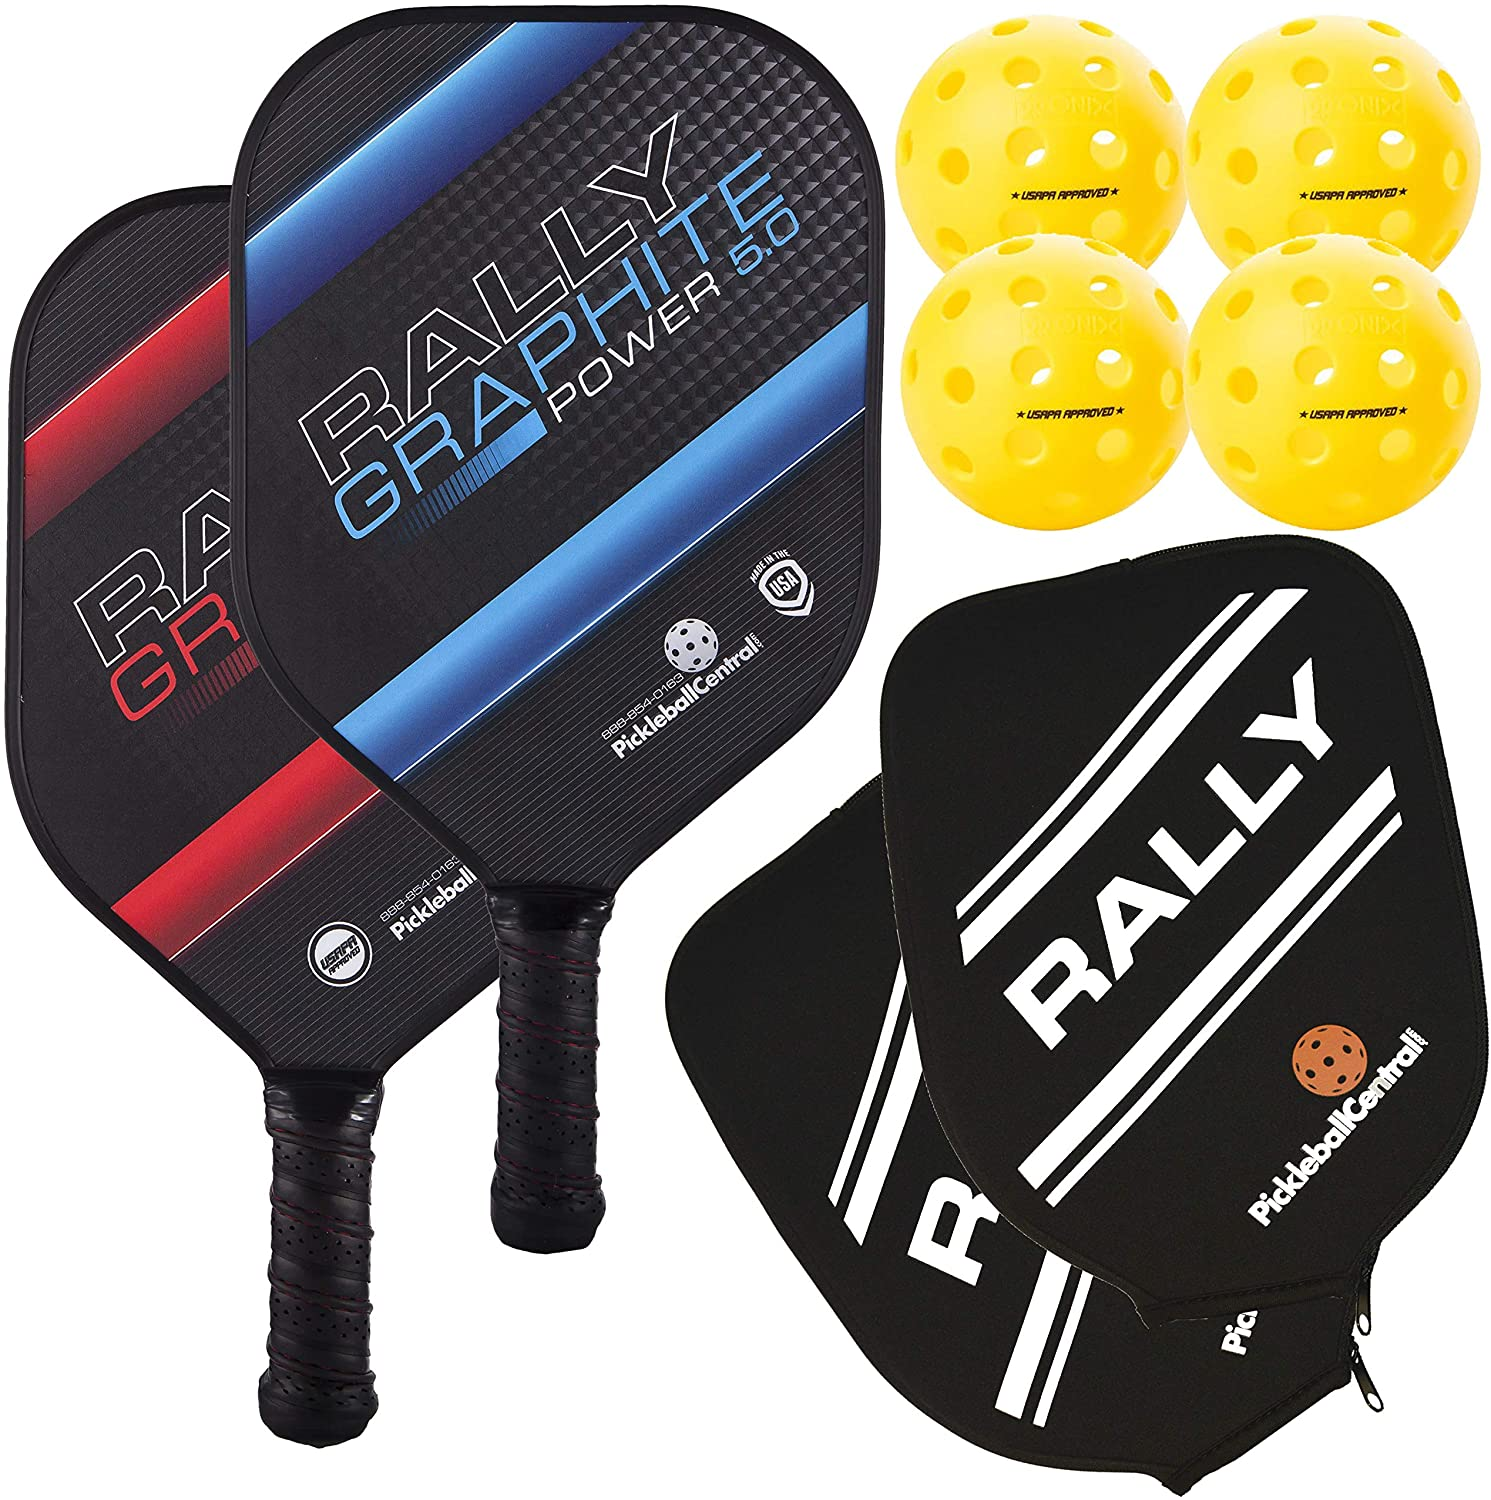 Pickleball Paddle - Rally Graphite Power 5.0 | Honeycomb Core, Graphite/Polymer Hybrid Composite Face | Power, Control, Large Sweet Spot | Paddle Cover